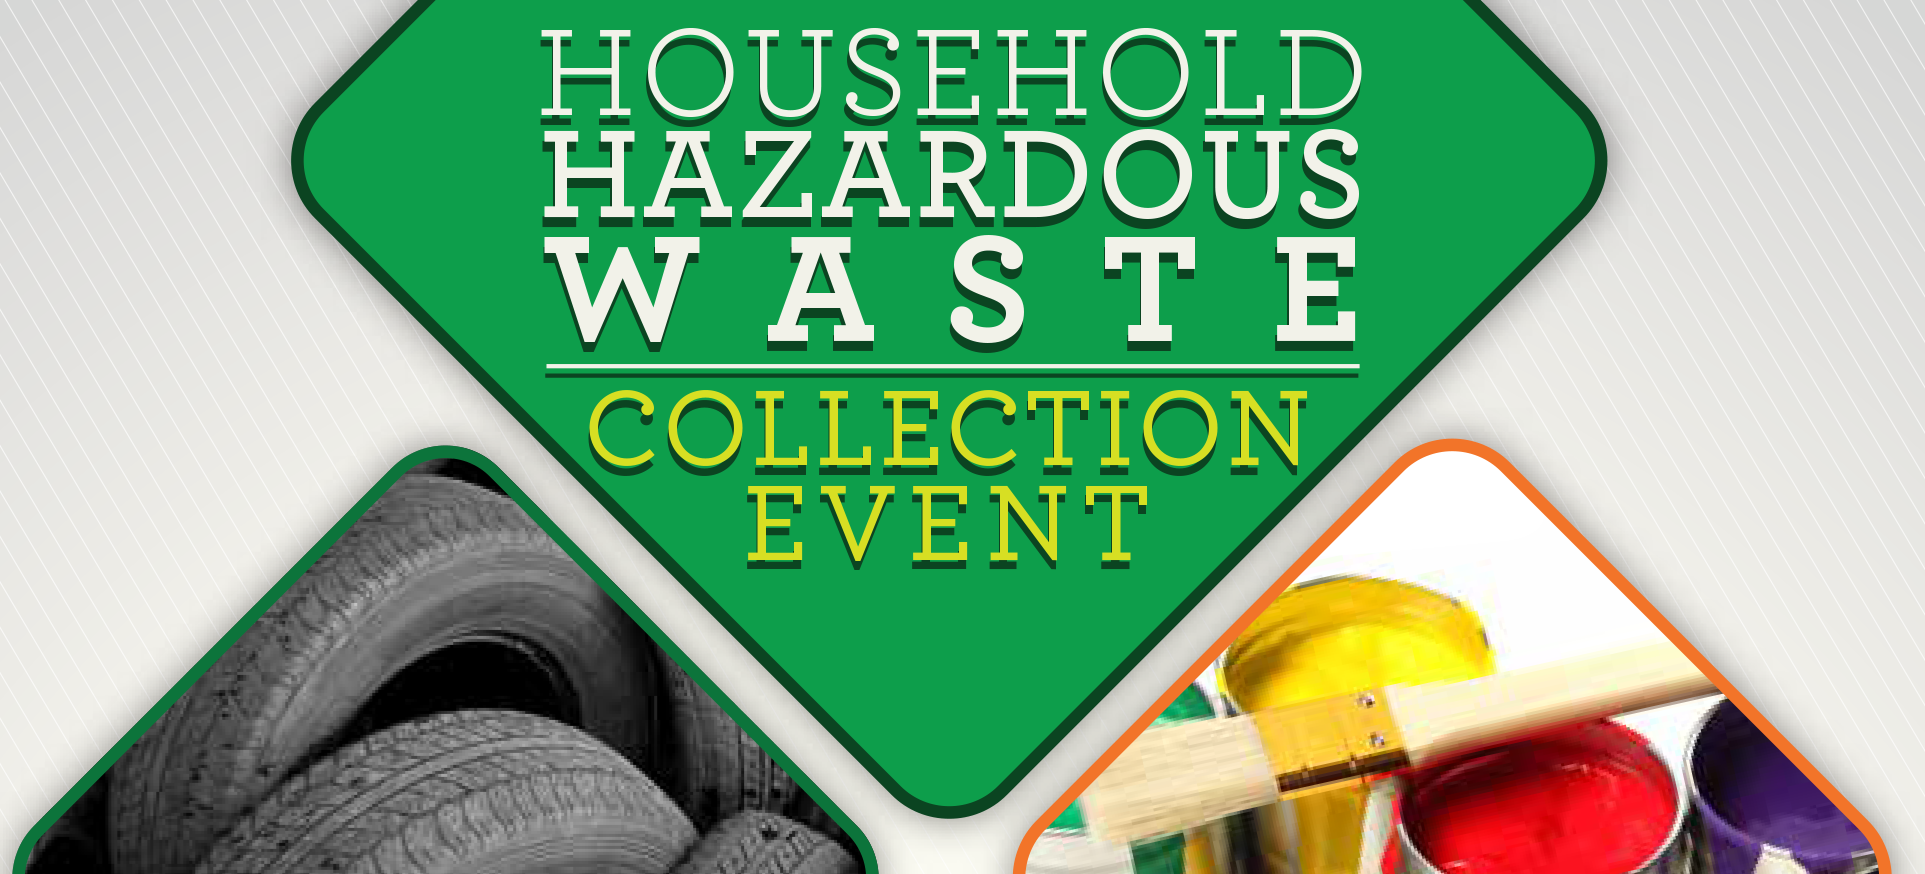 Household Hazardous Waste and Scrap Tire Collection